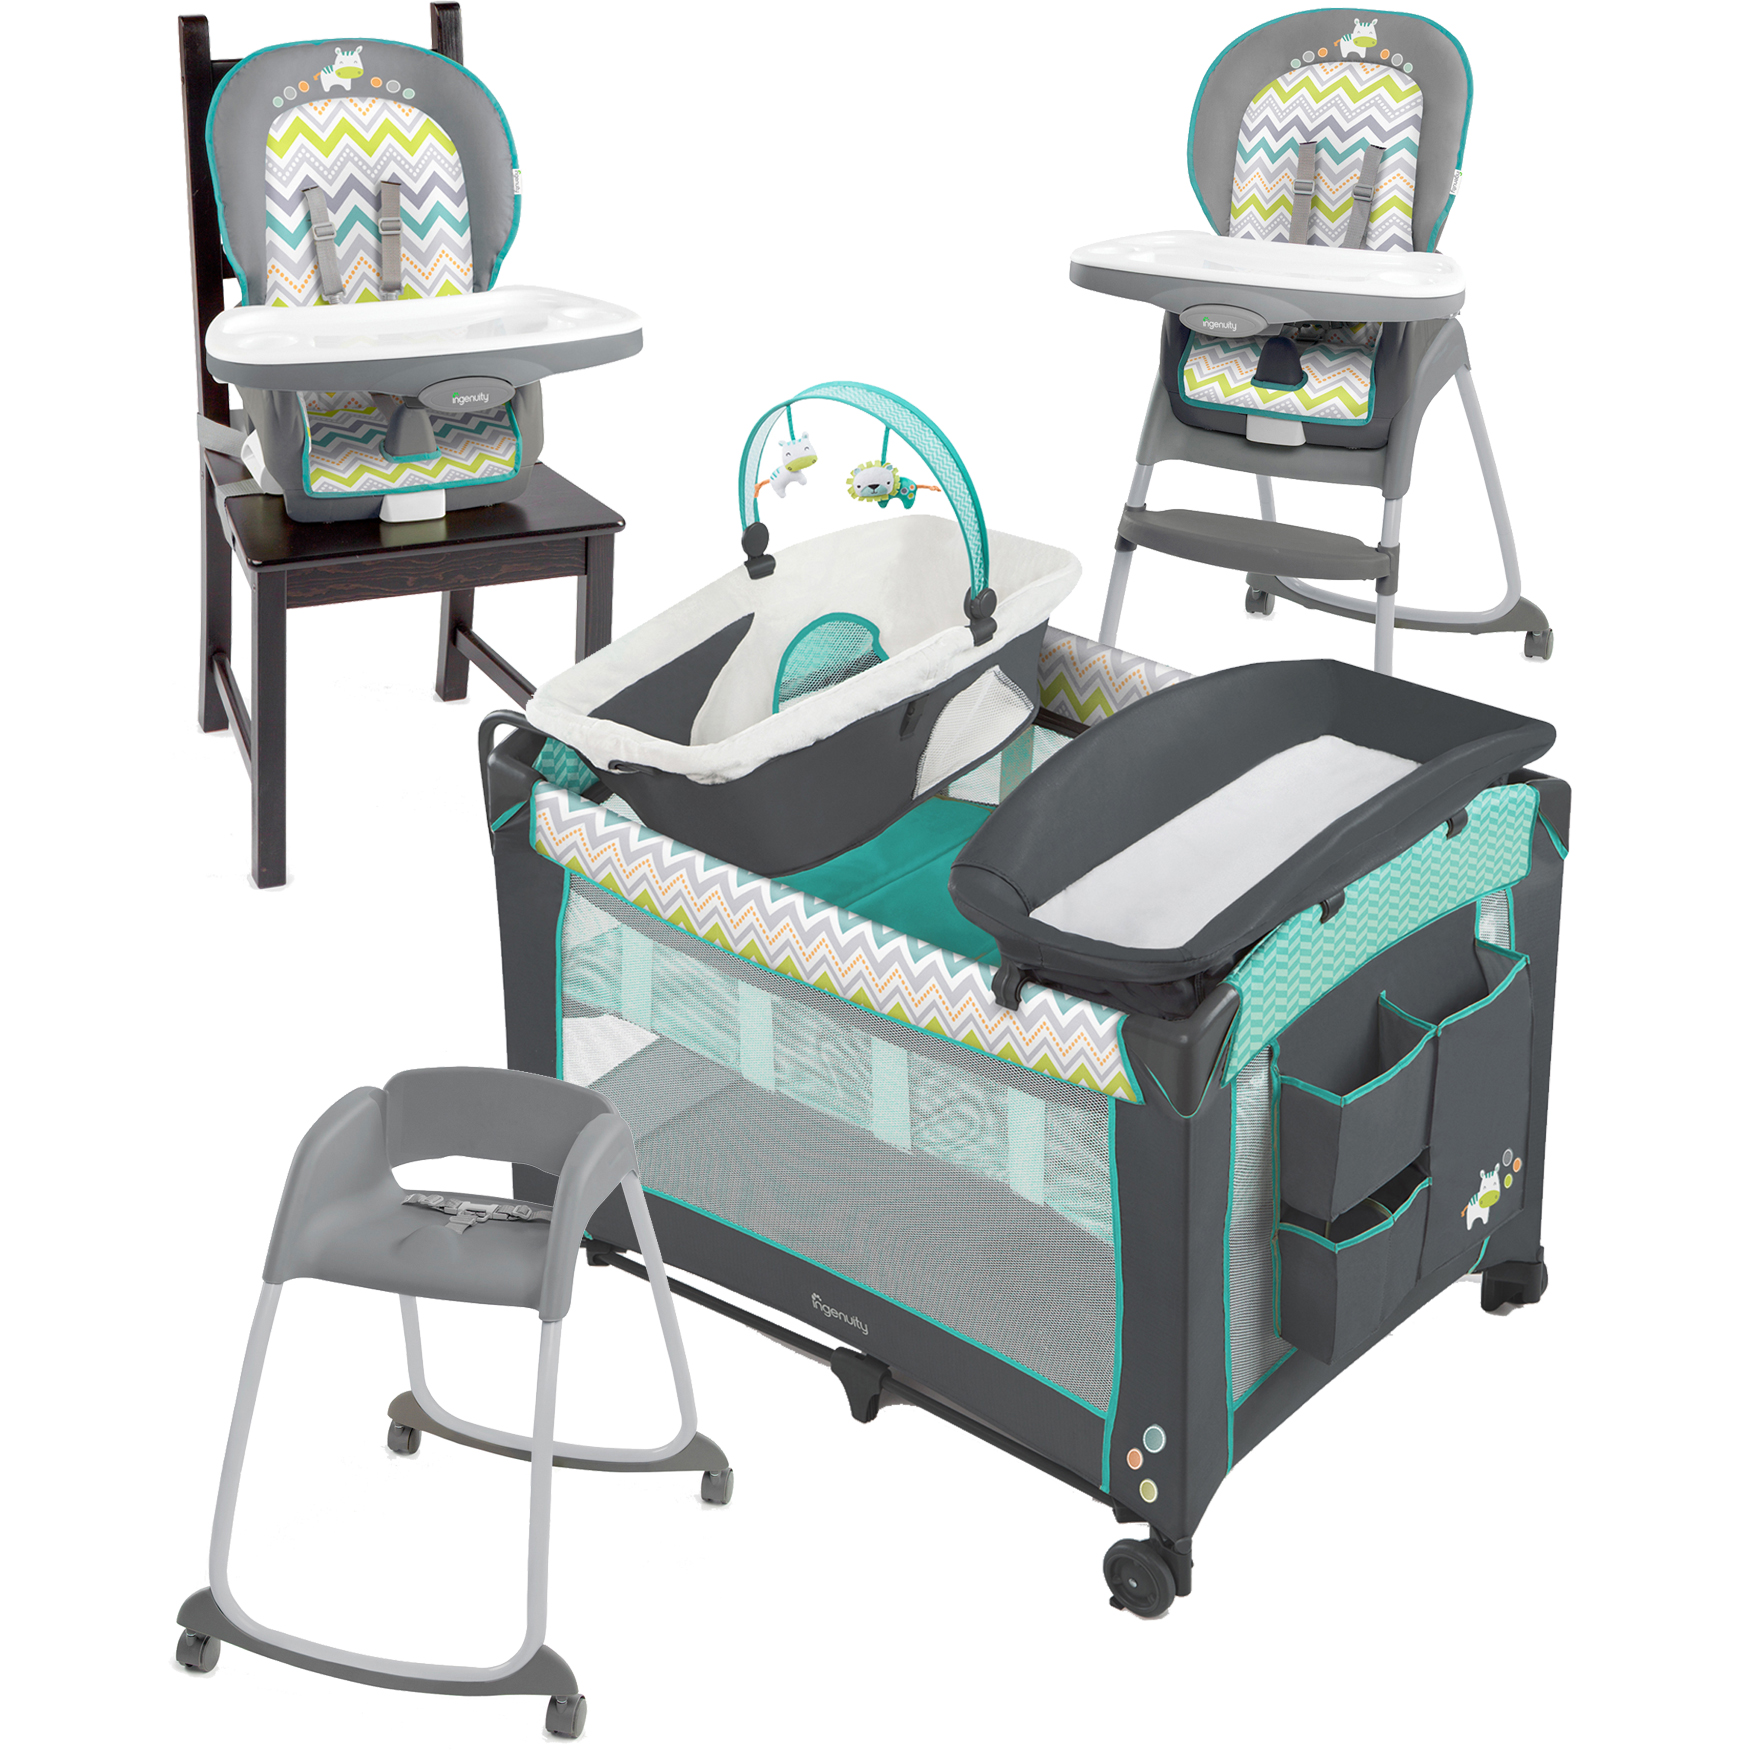 Ingenuity Ridgedale Collection Playard and High Chair Value Set